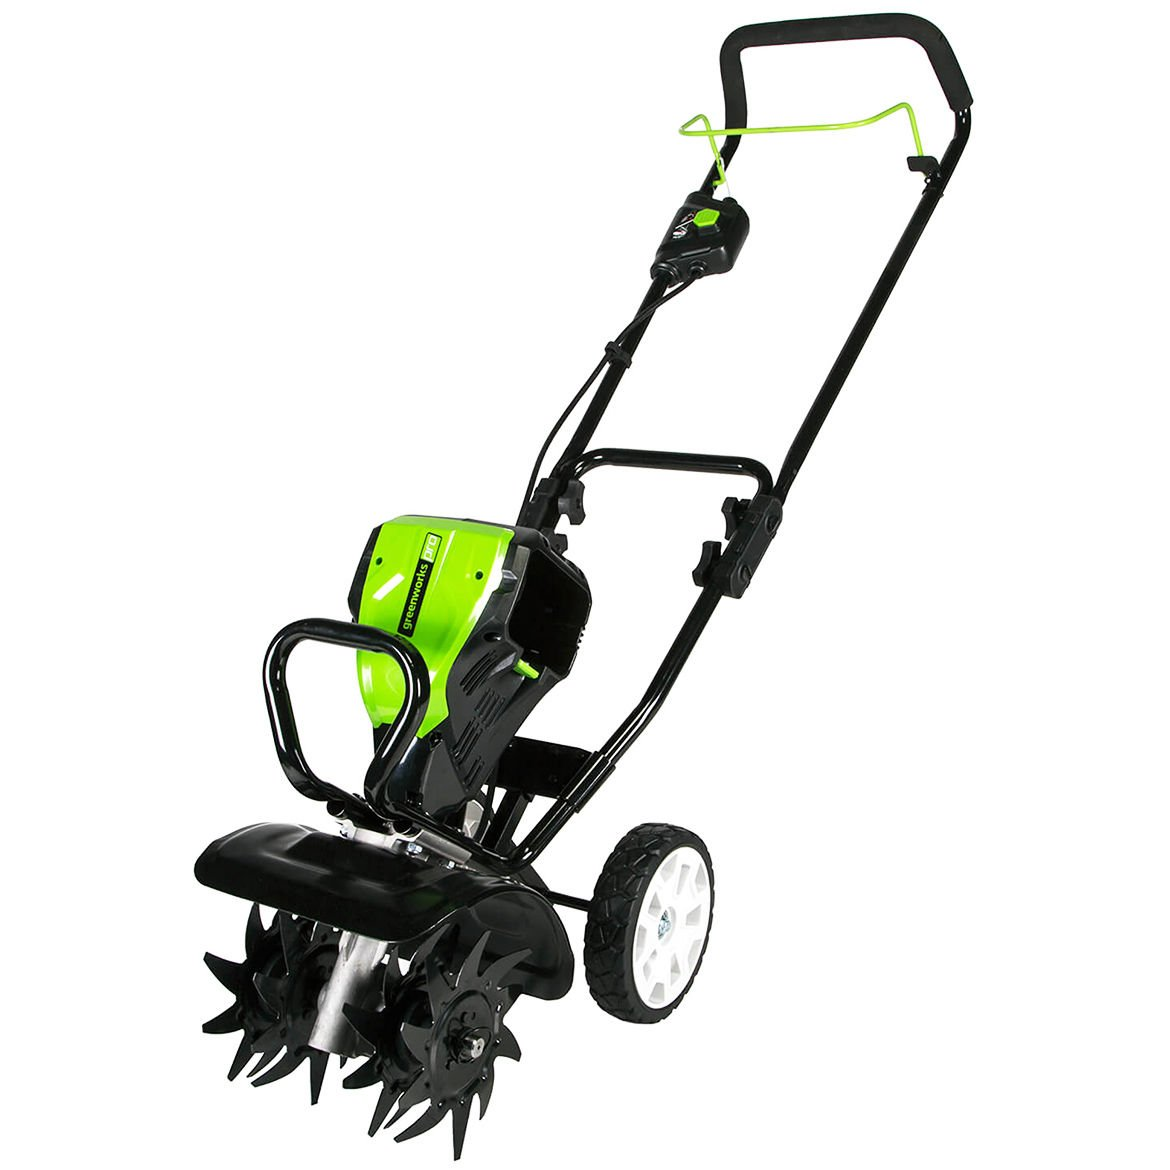 GreenWorks 80V 10 Power Tiller Cultivator, Battery Not Included TL80L00